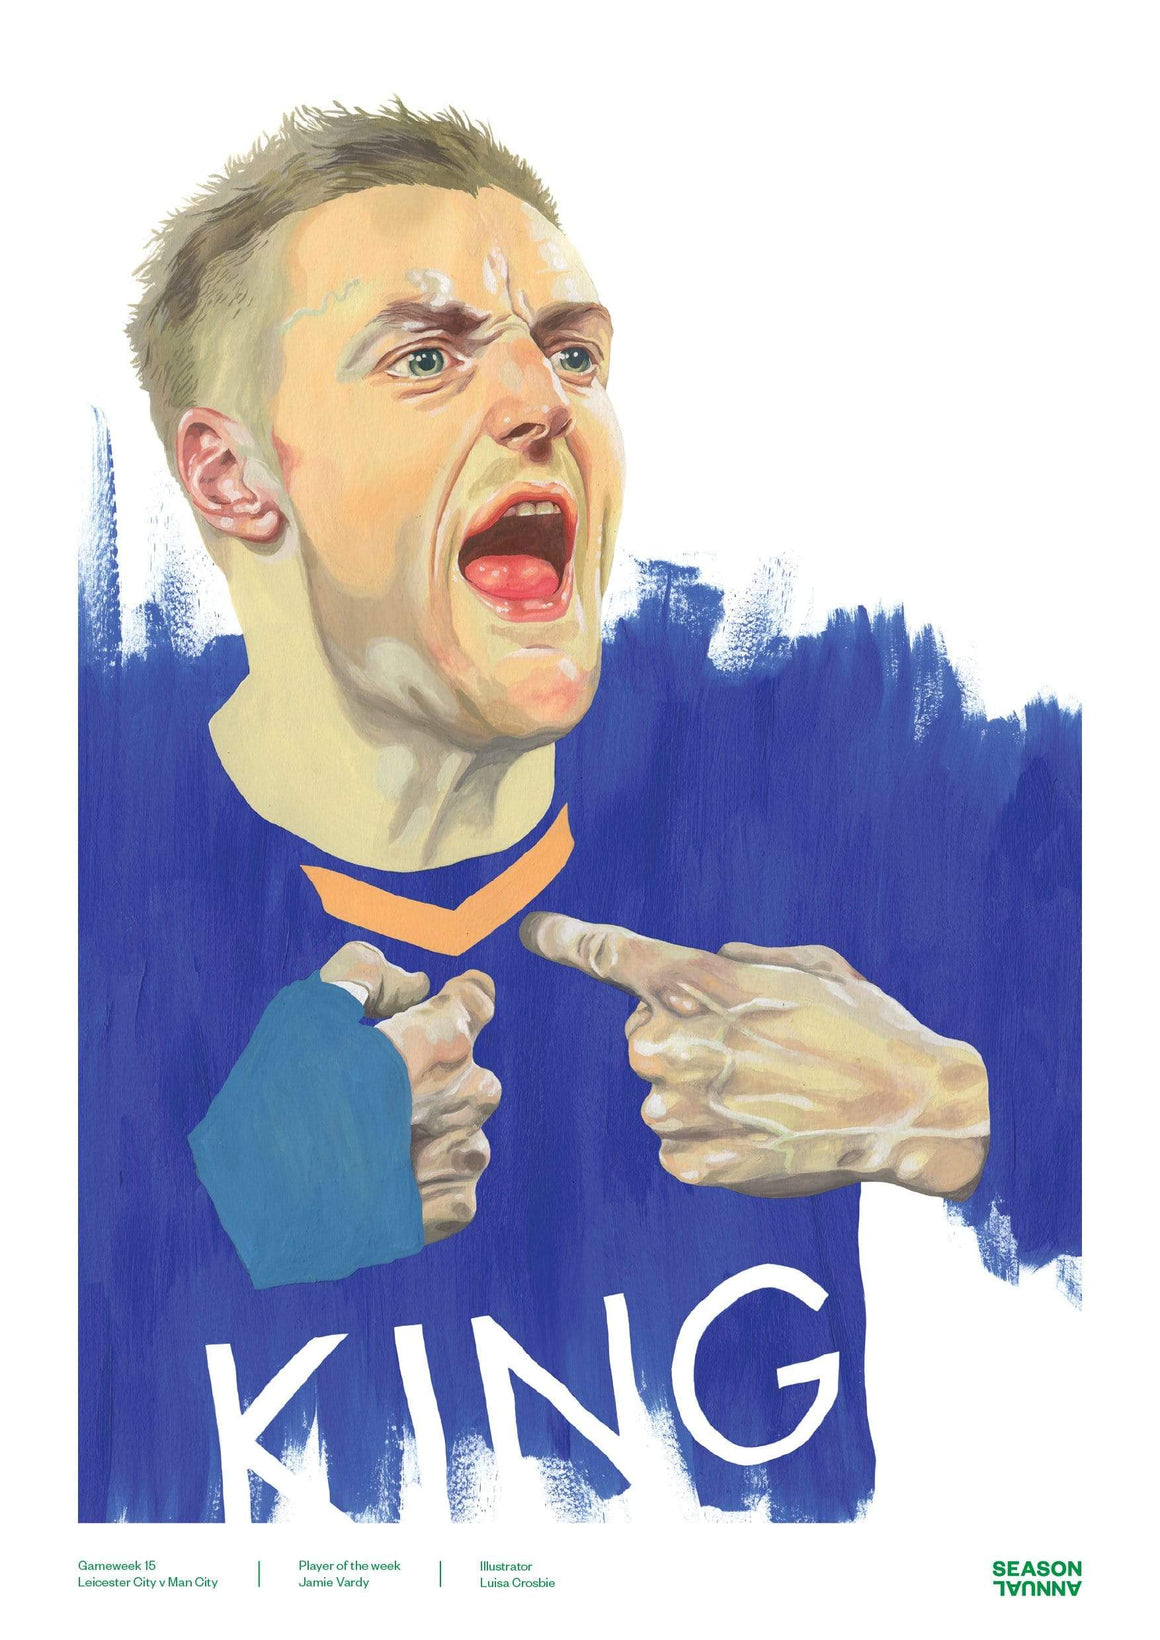 Season Annual A3 poster of Jamie Vardy scoring for Leicester City